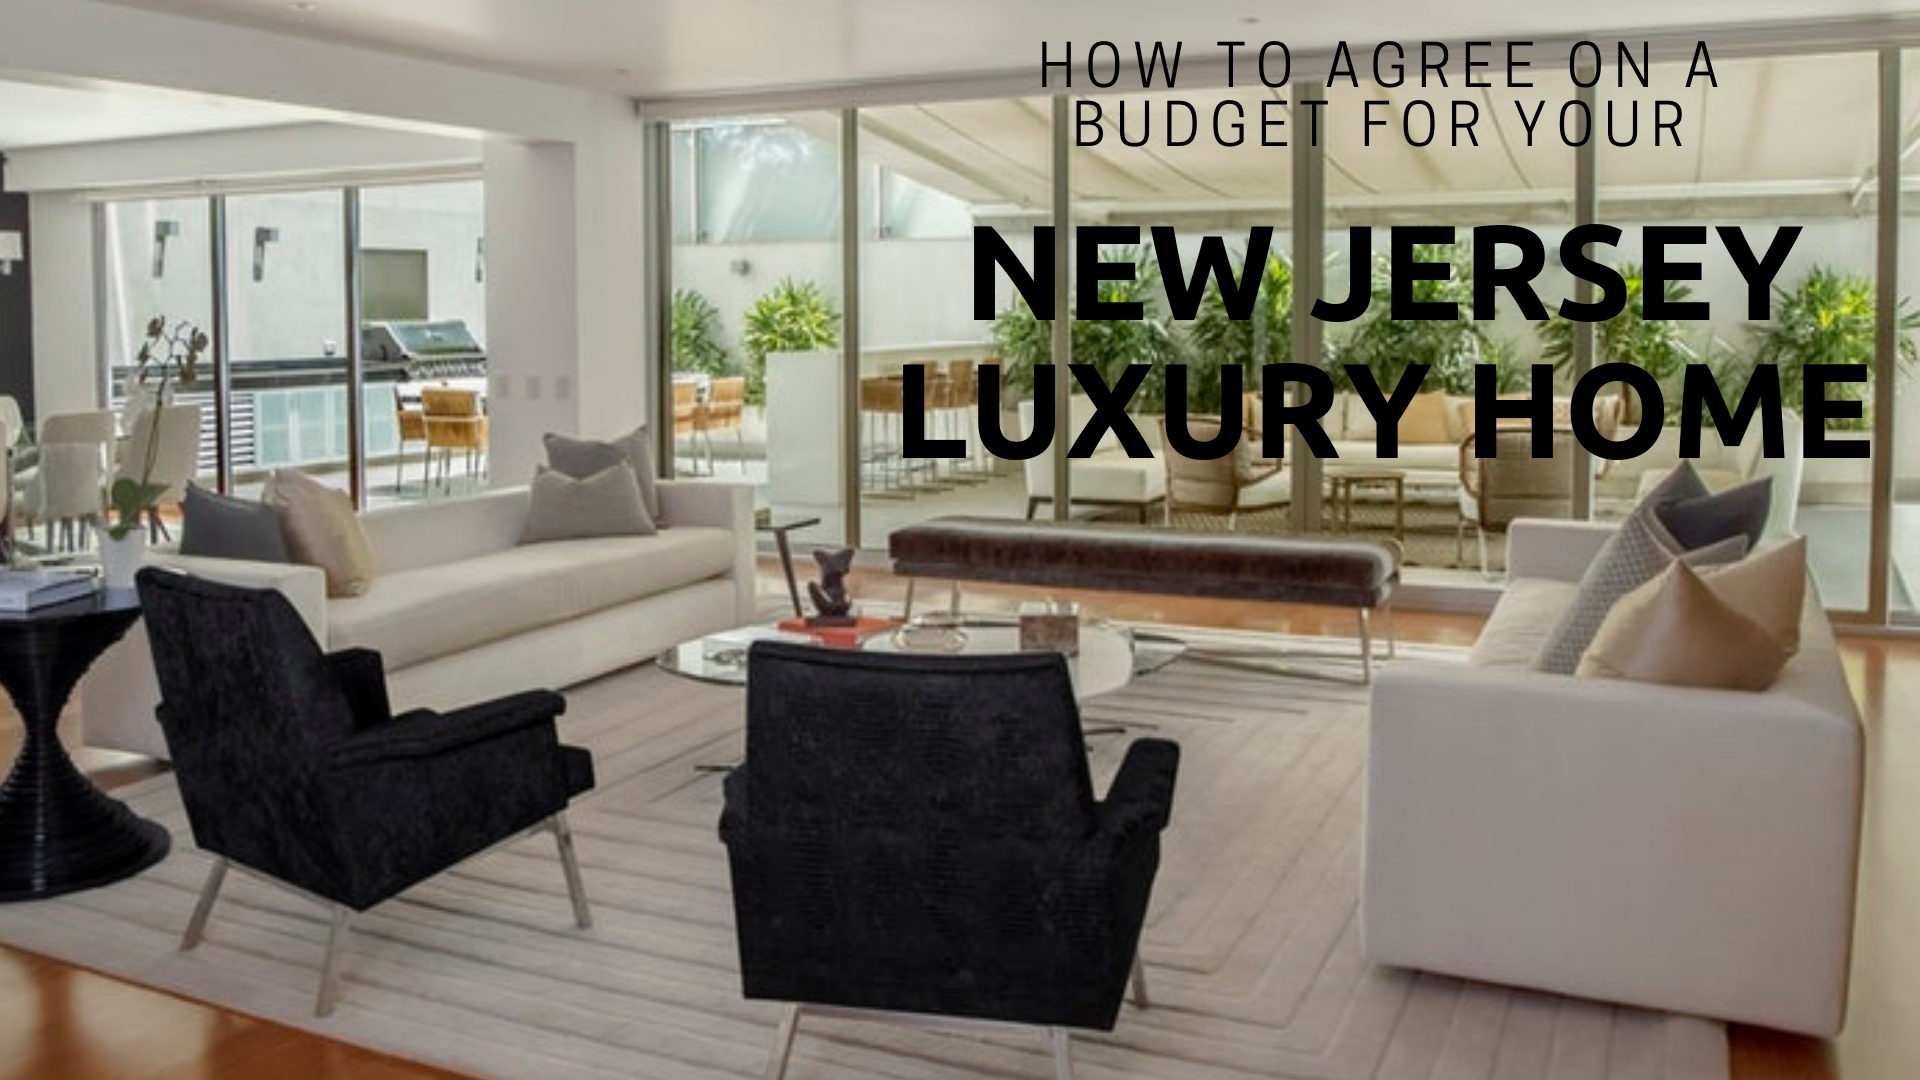 How to Agree on a Budget for Your New Jersey Luxury Home